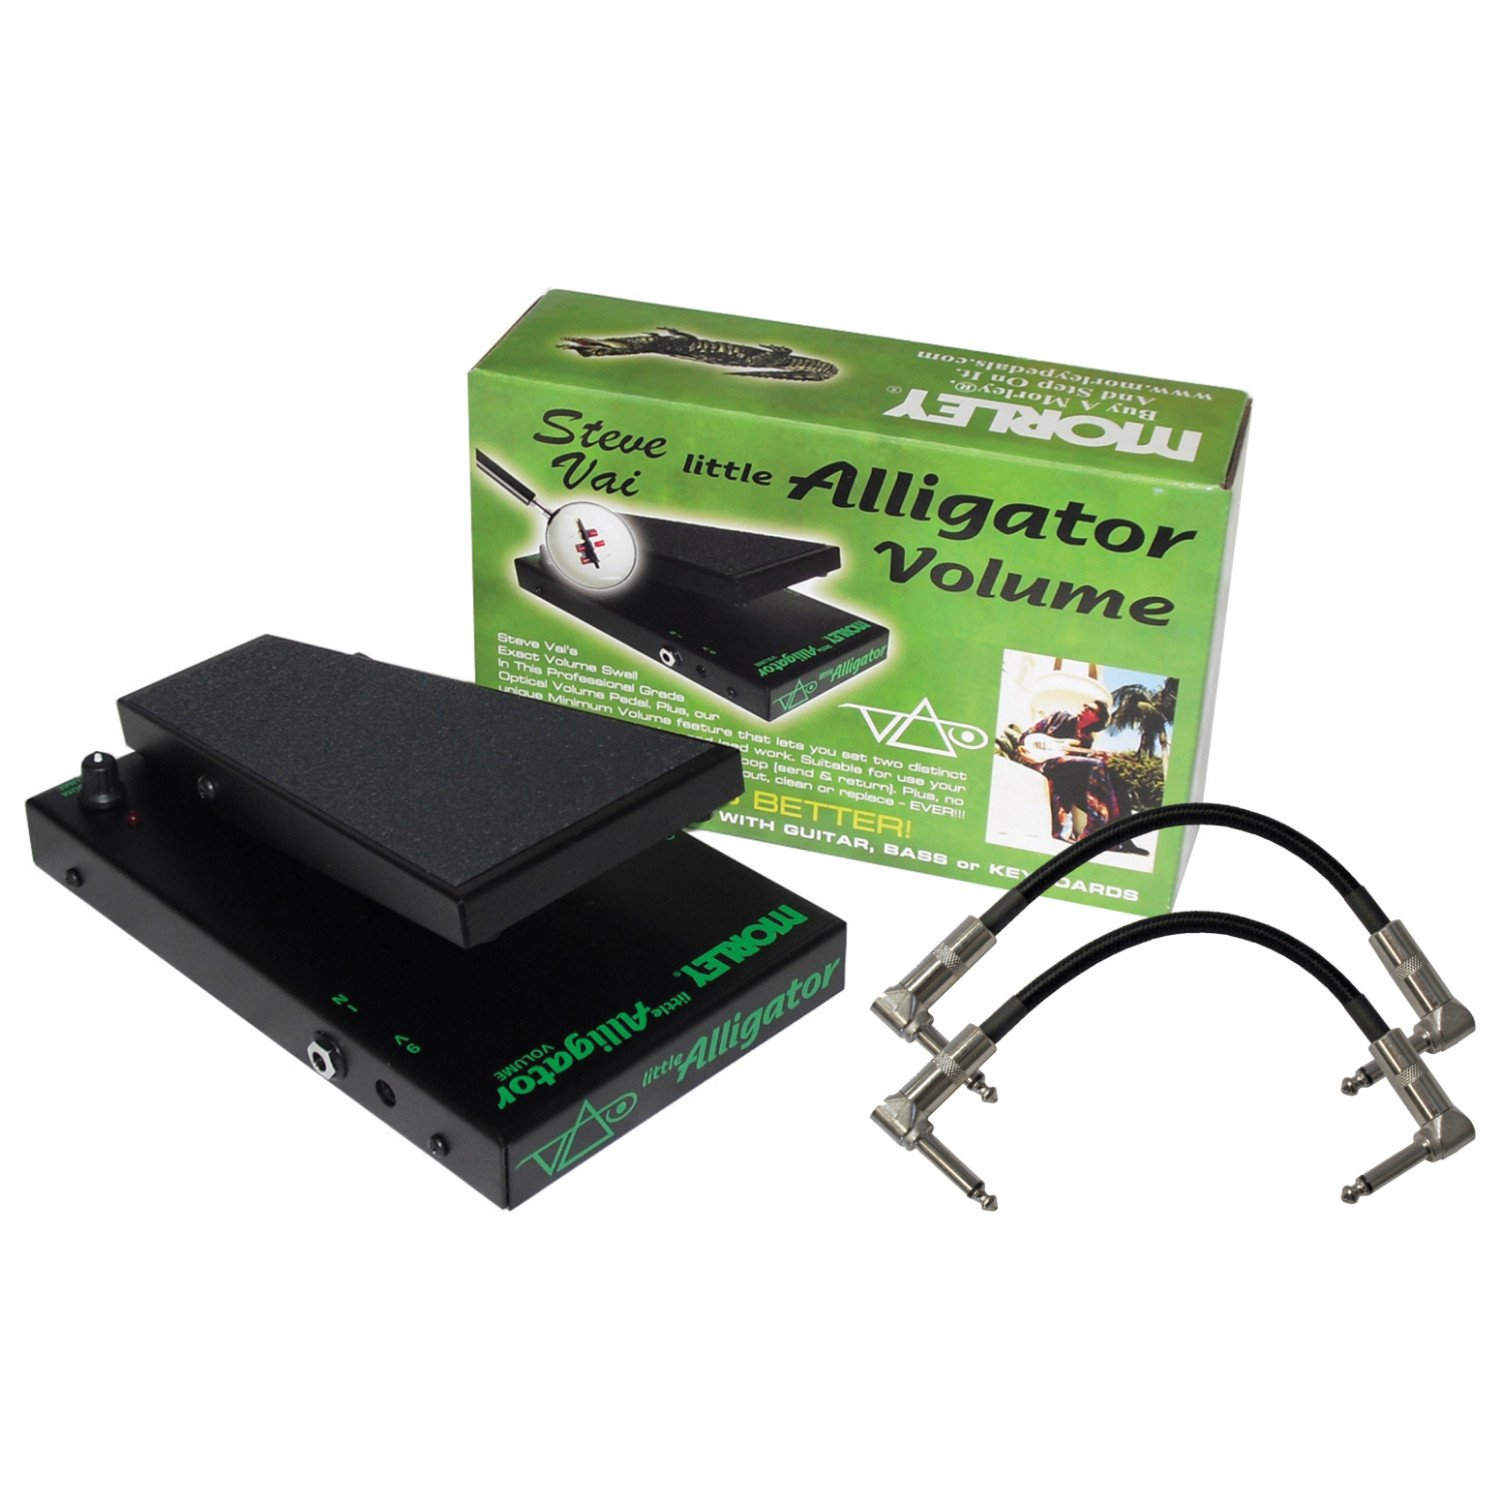 Morley STEVE VAI LITTLE ALLIGATOR VOLUME Pedal Bundle with 2 Patch Cables by MORLEY